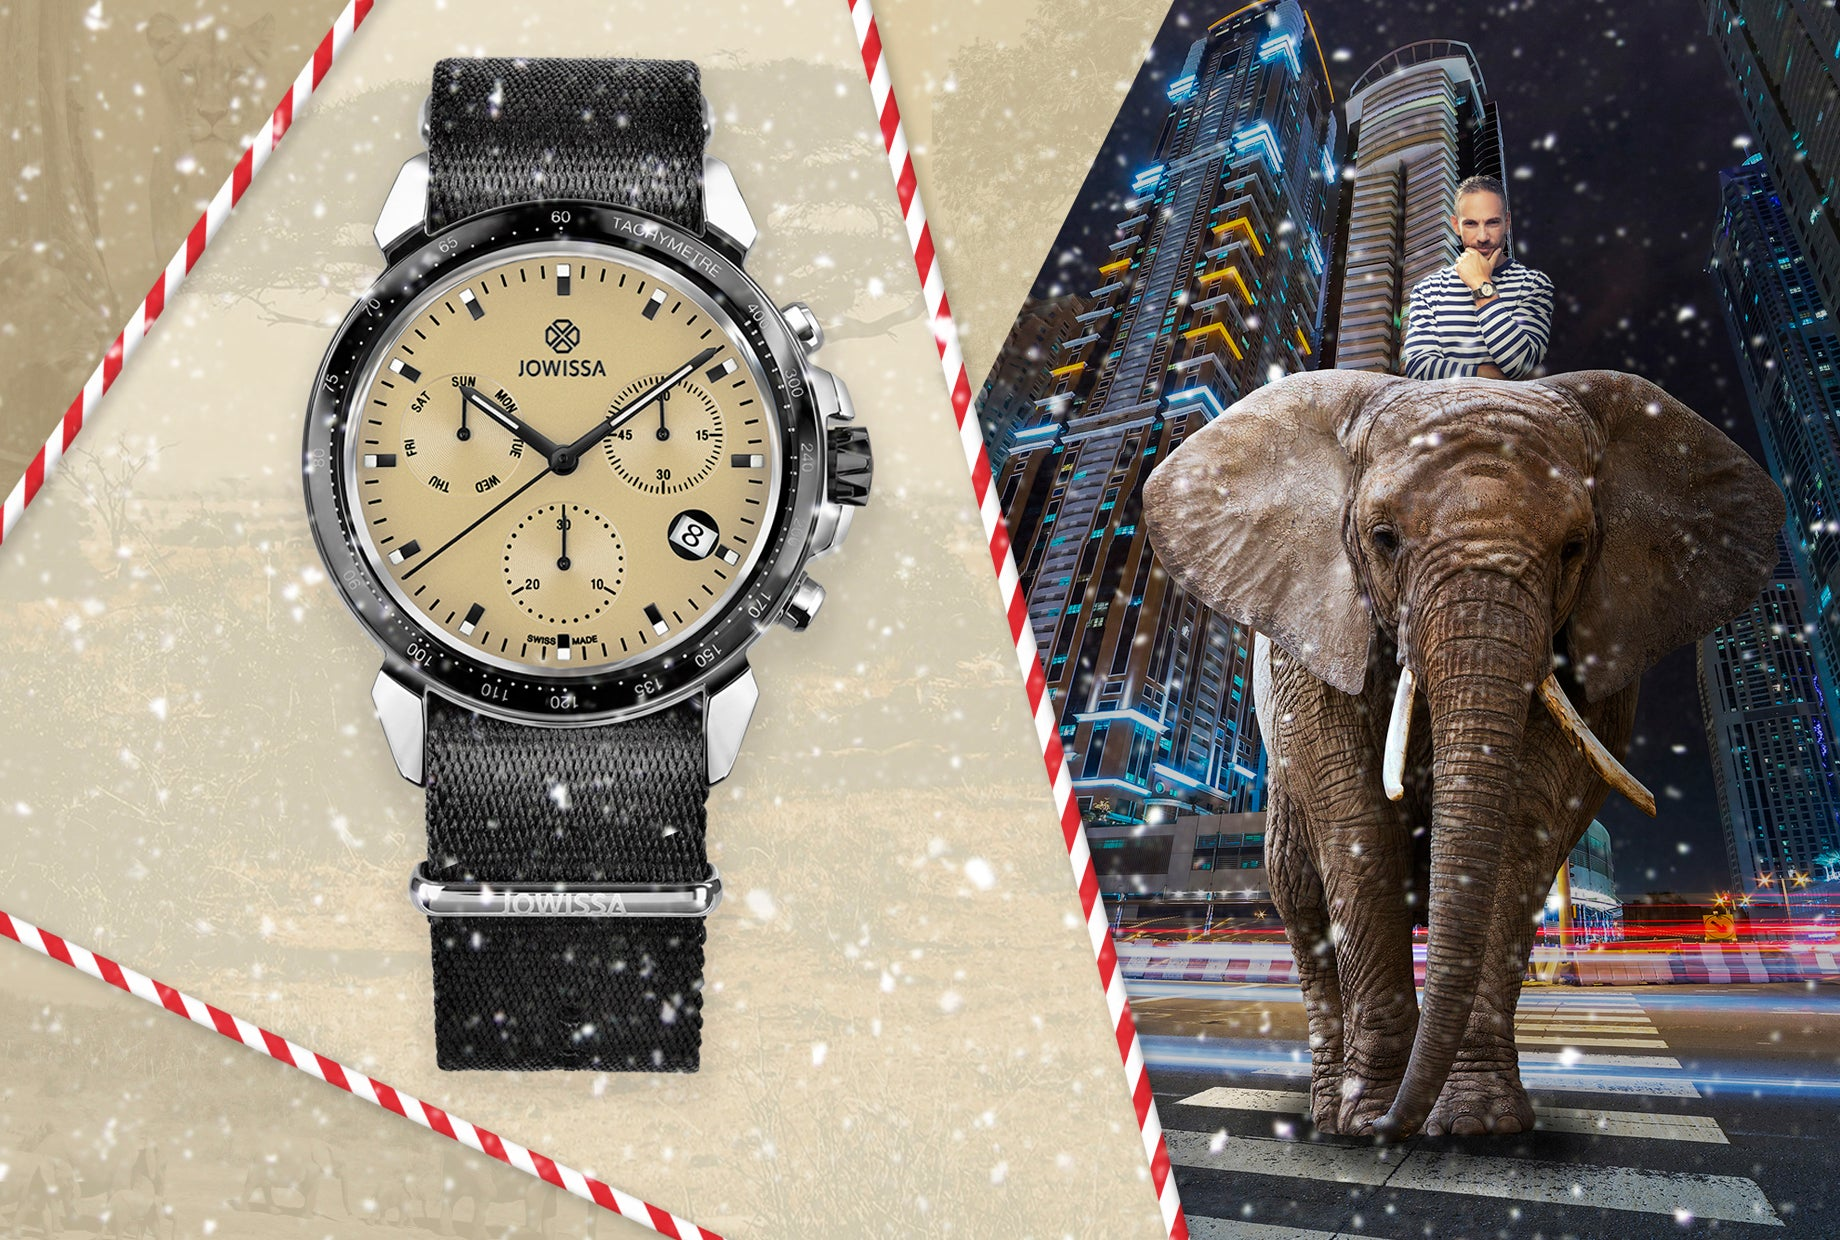 Take an Adventure with the New LeWy Safari Collection